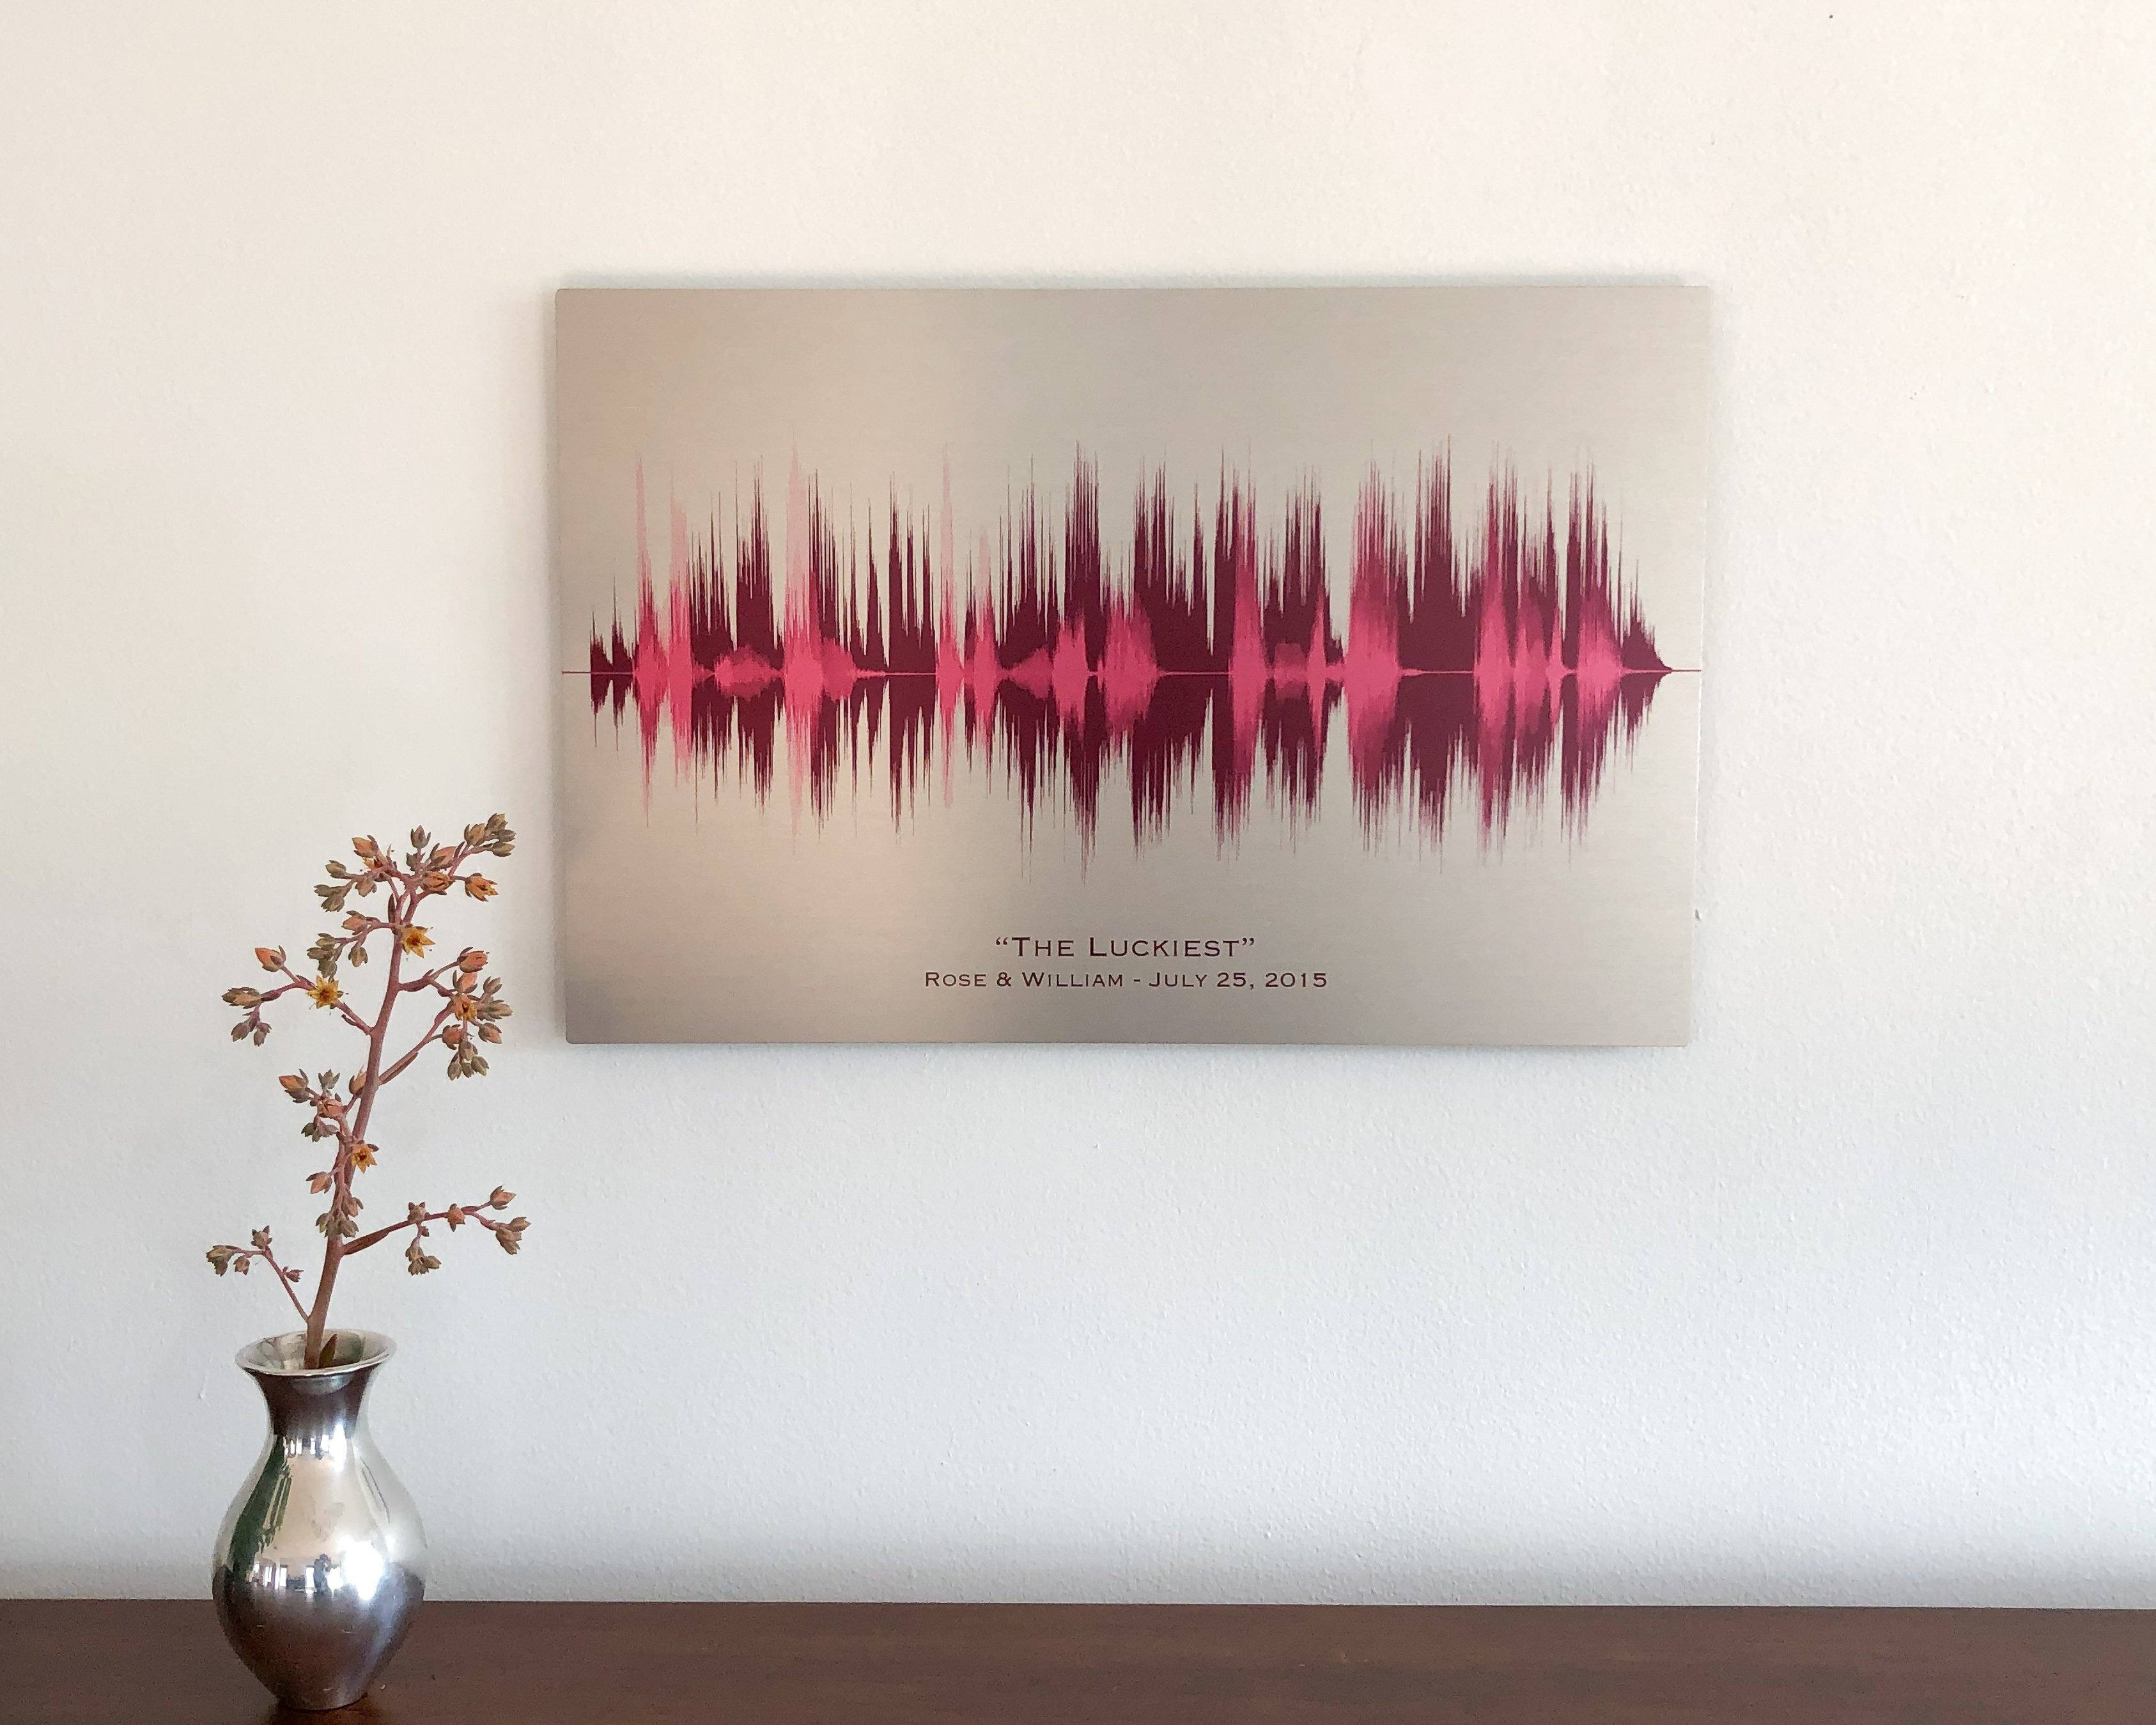 10th Year Anniversary Meaningful Gifts, Voice Art and Song - Artsy Voiceprint